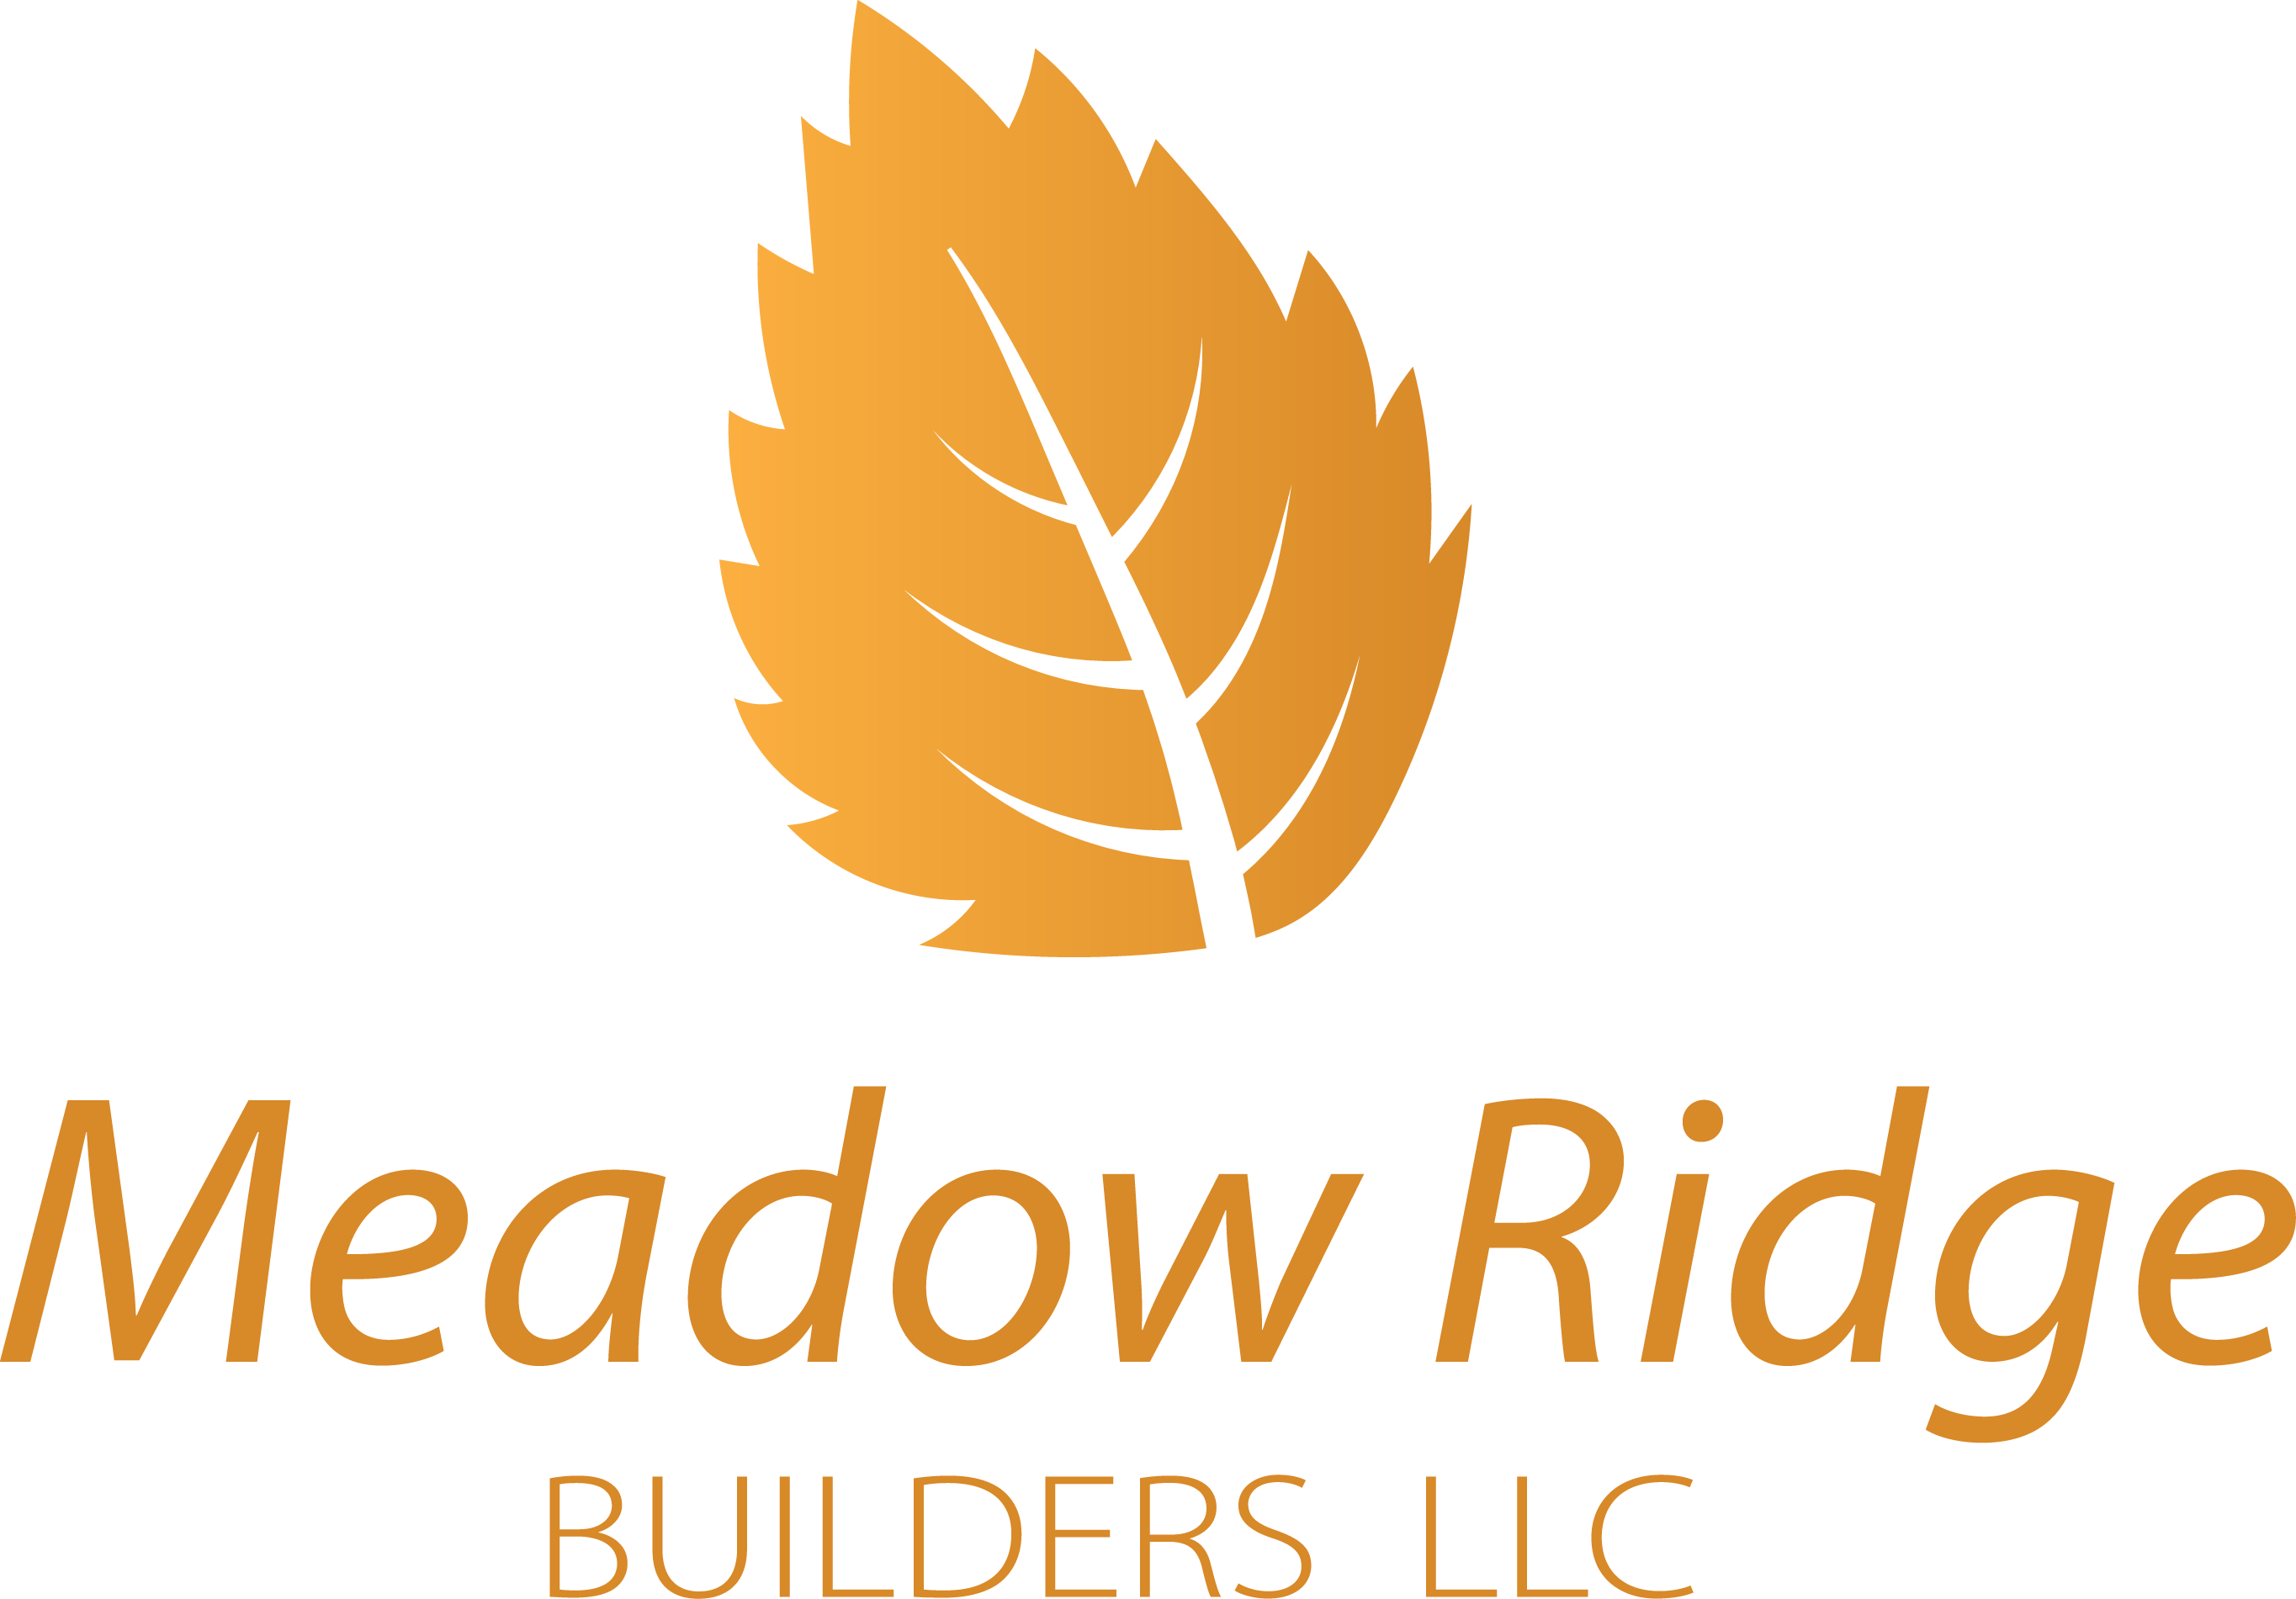 Meadow Ridge Builders_Primary Logo